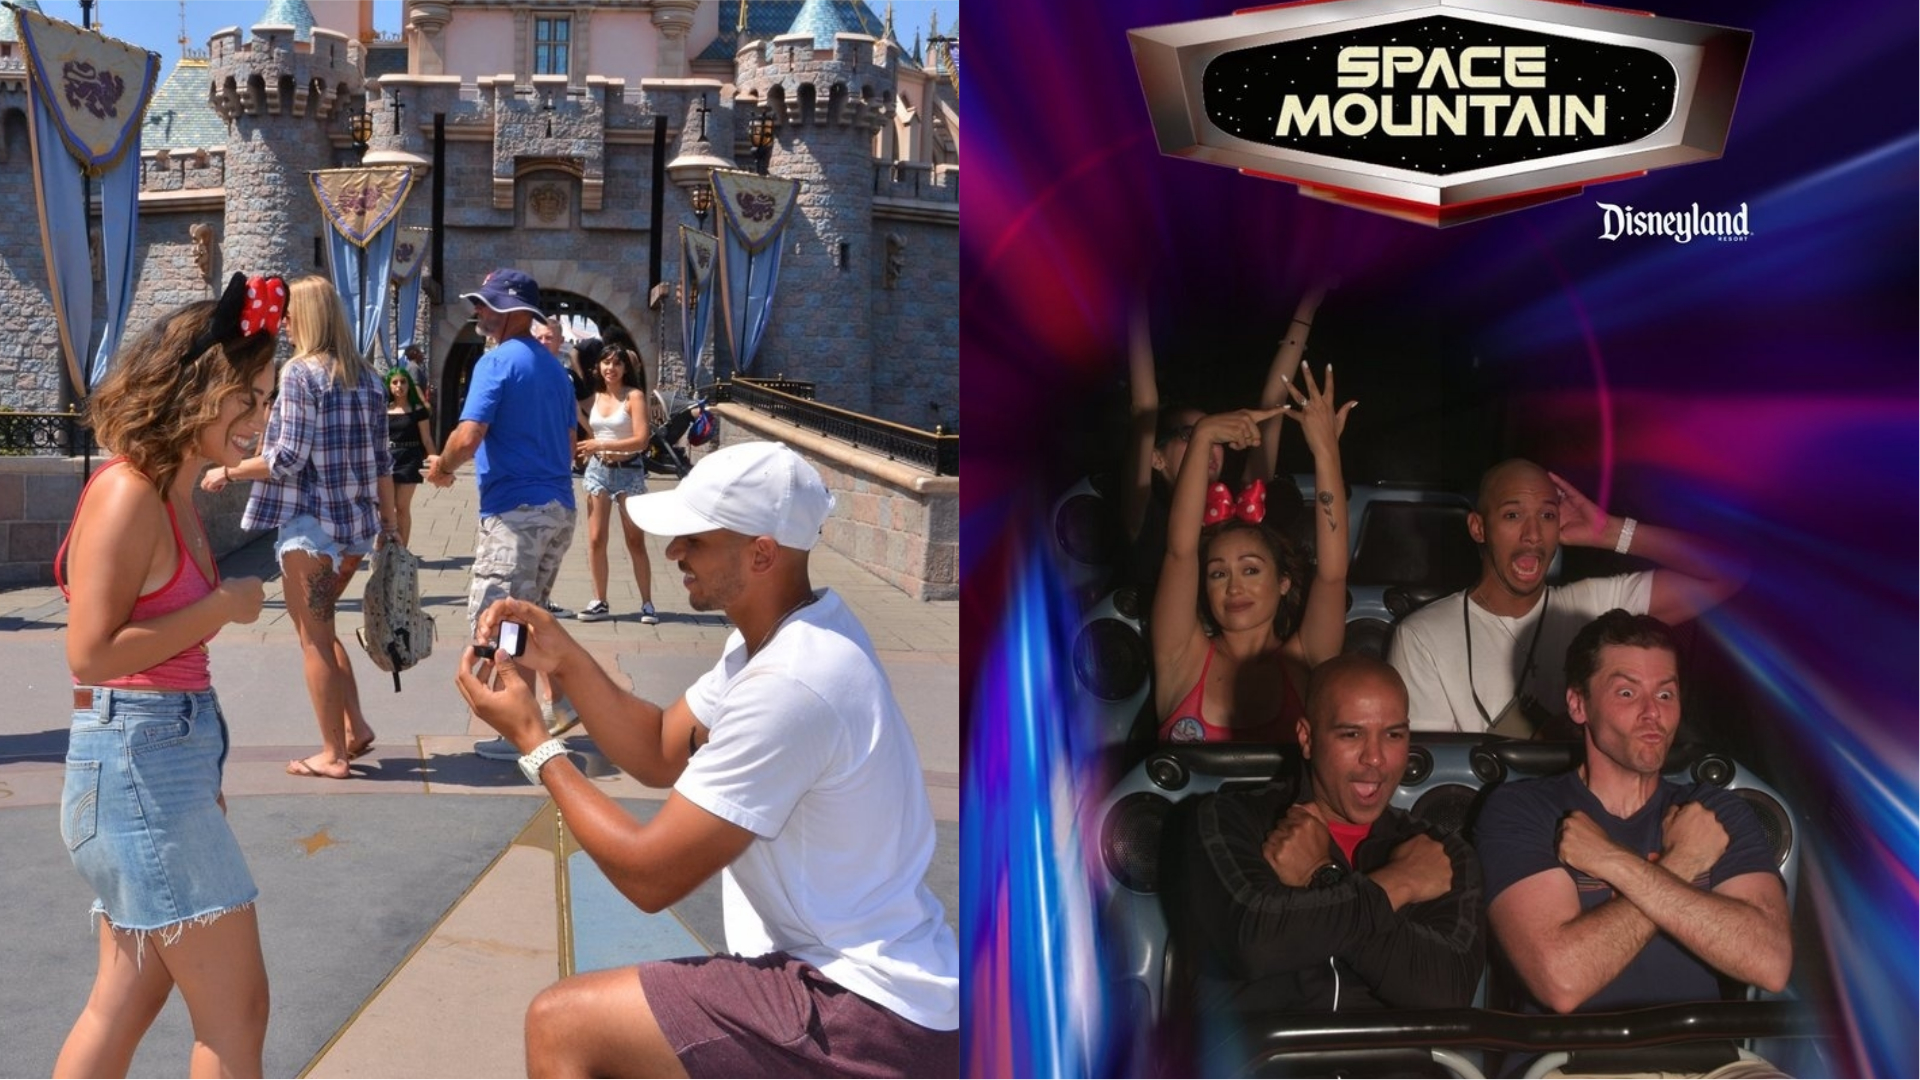 A Disneyland proposal followed by a celebration on Space Mountain